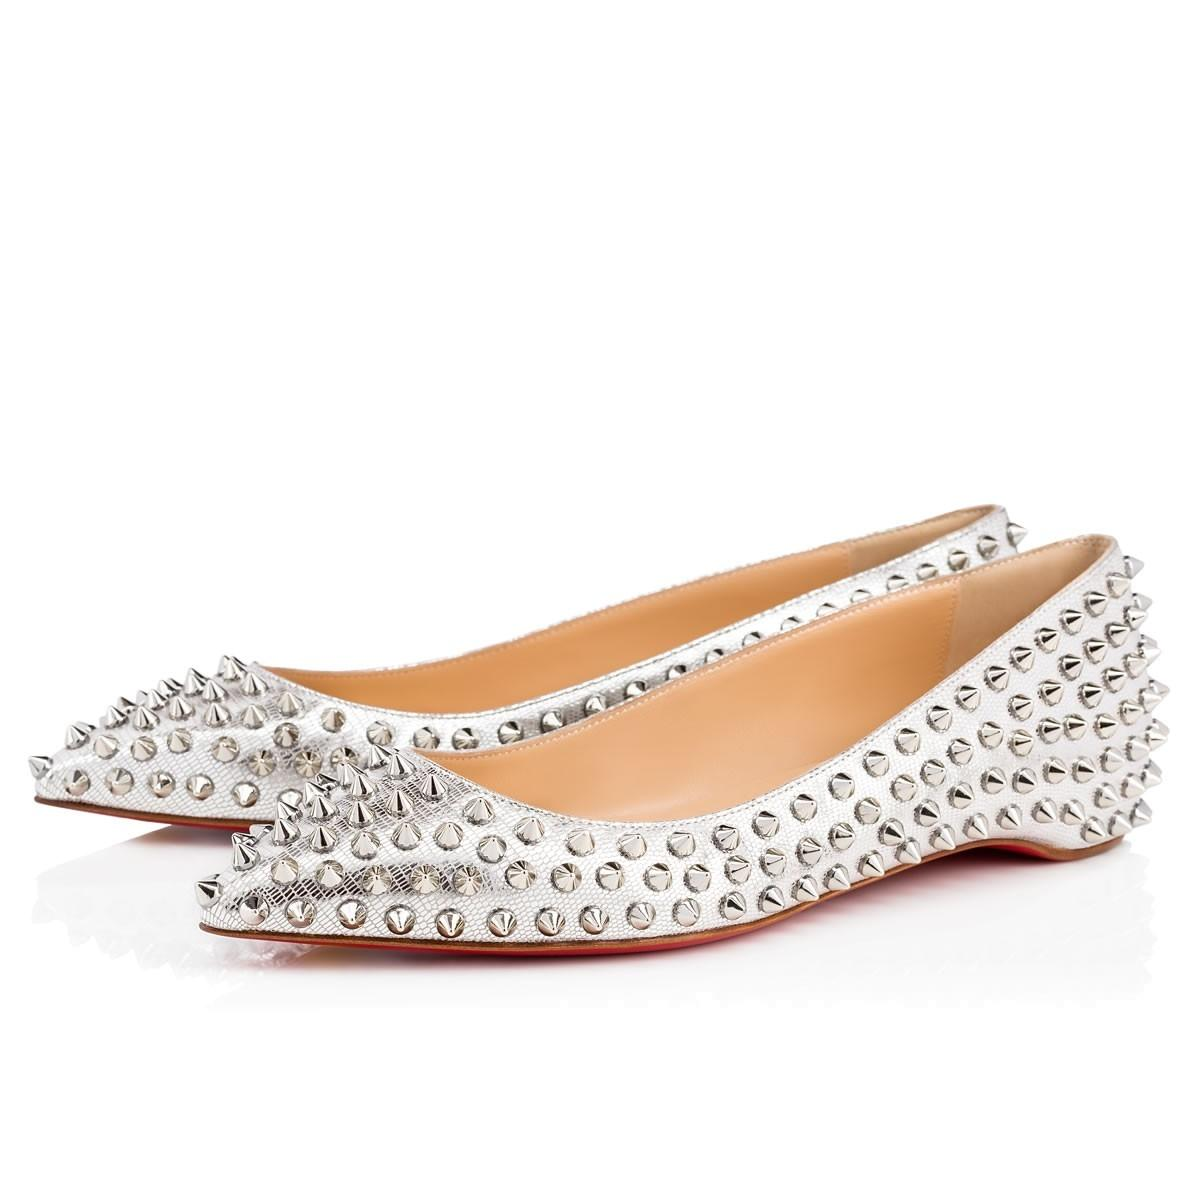 wholesale dealer b276b 95d3f Christian Louboutin Silver Follies Follies Follies Spikes ...